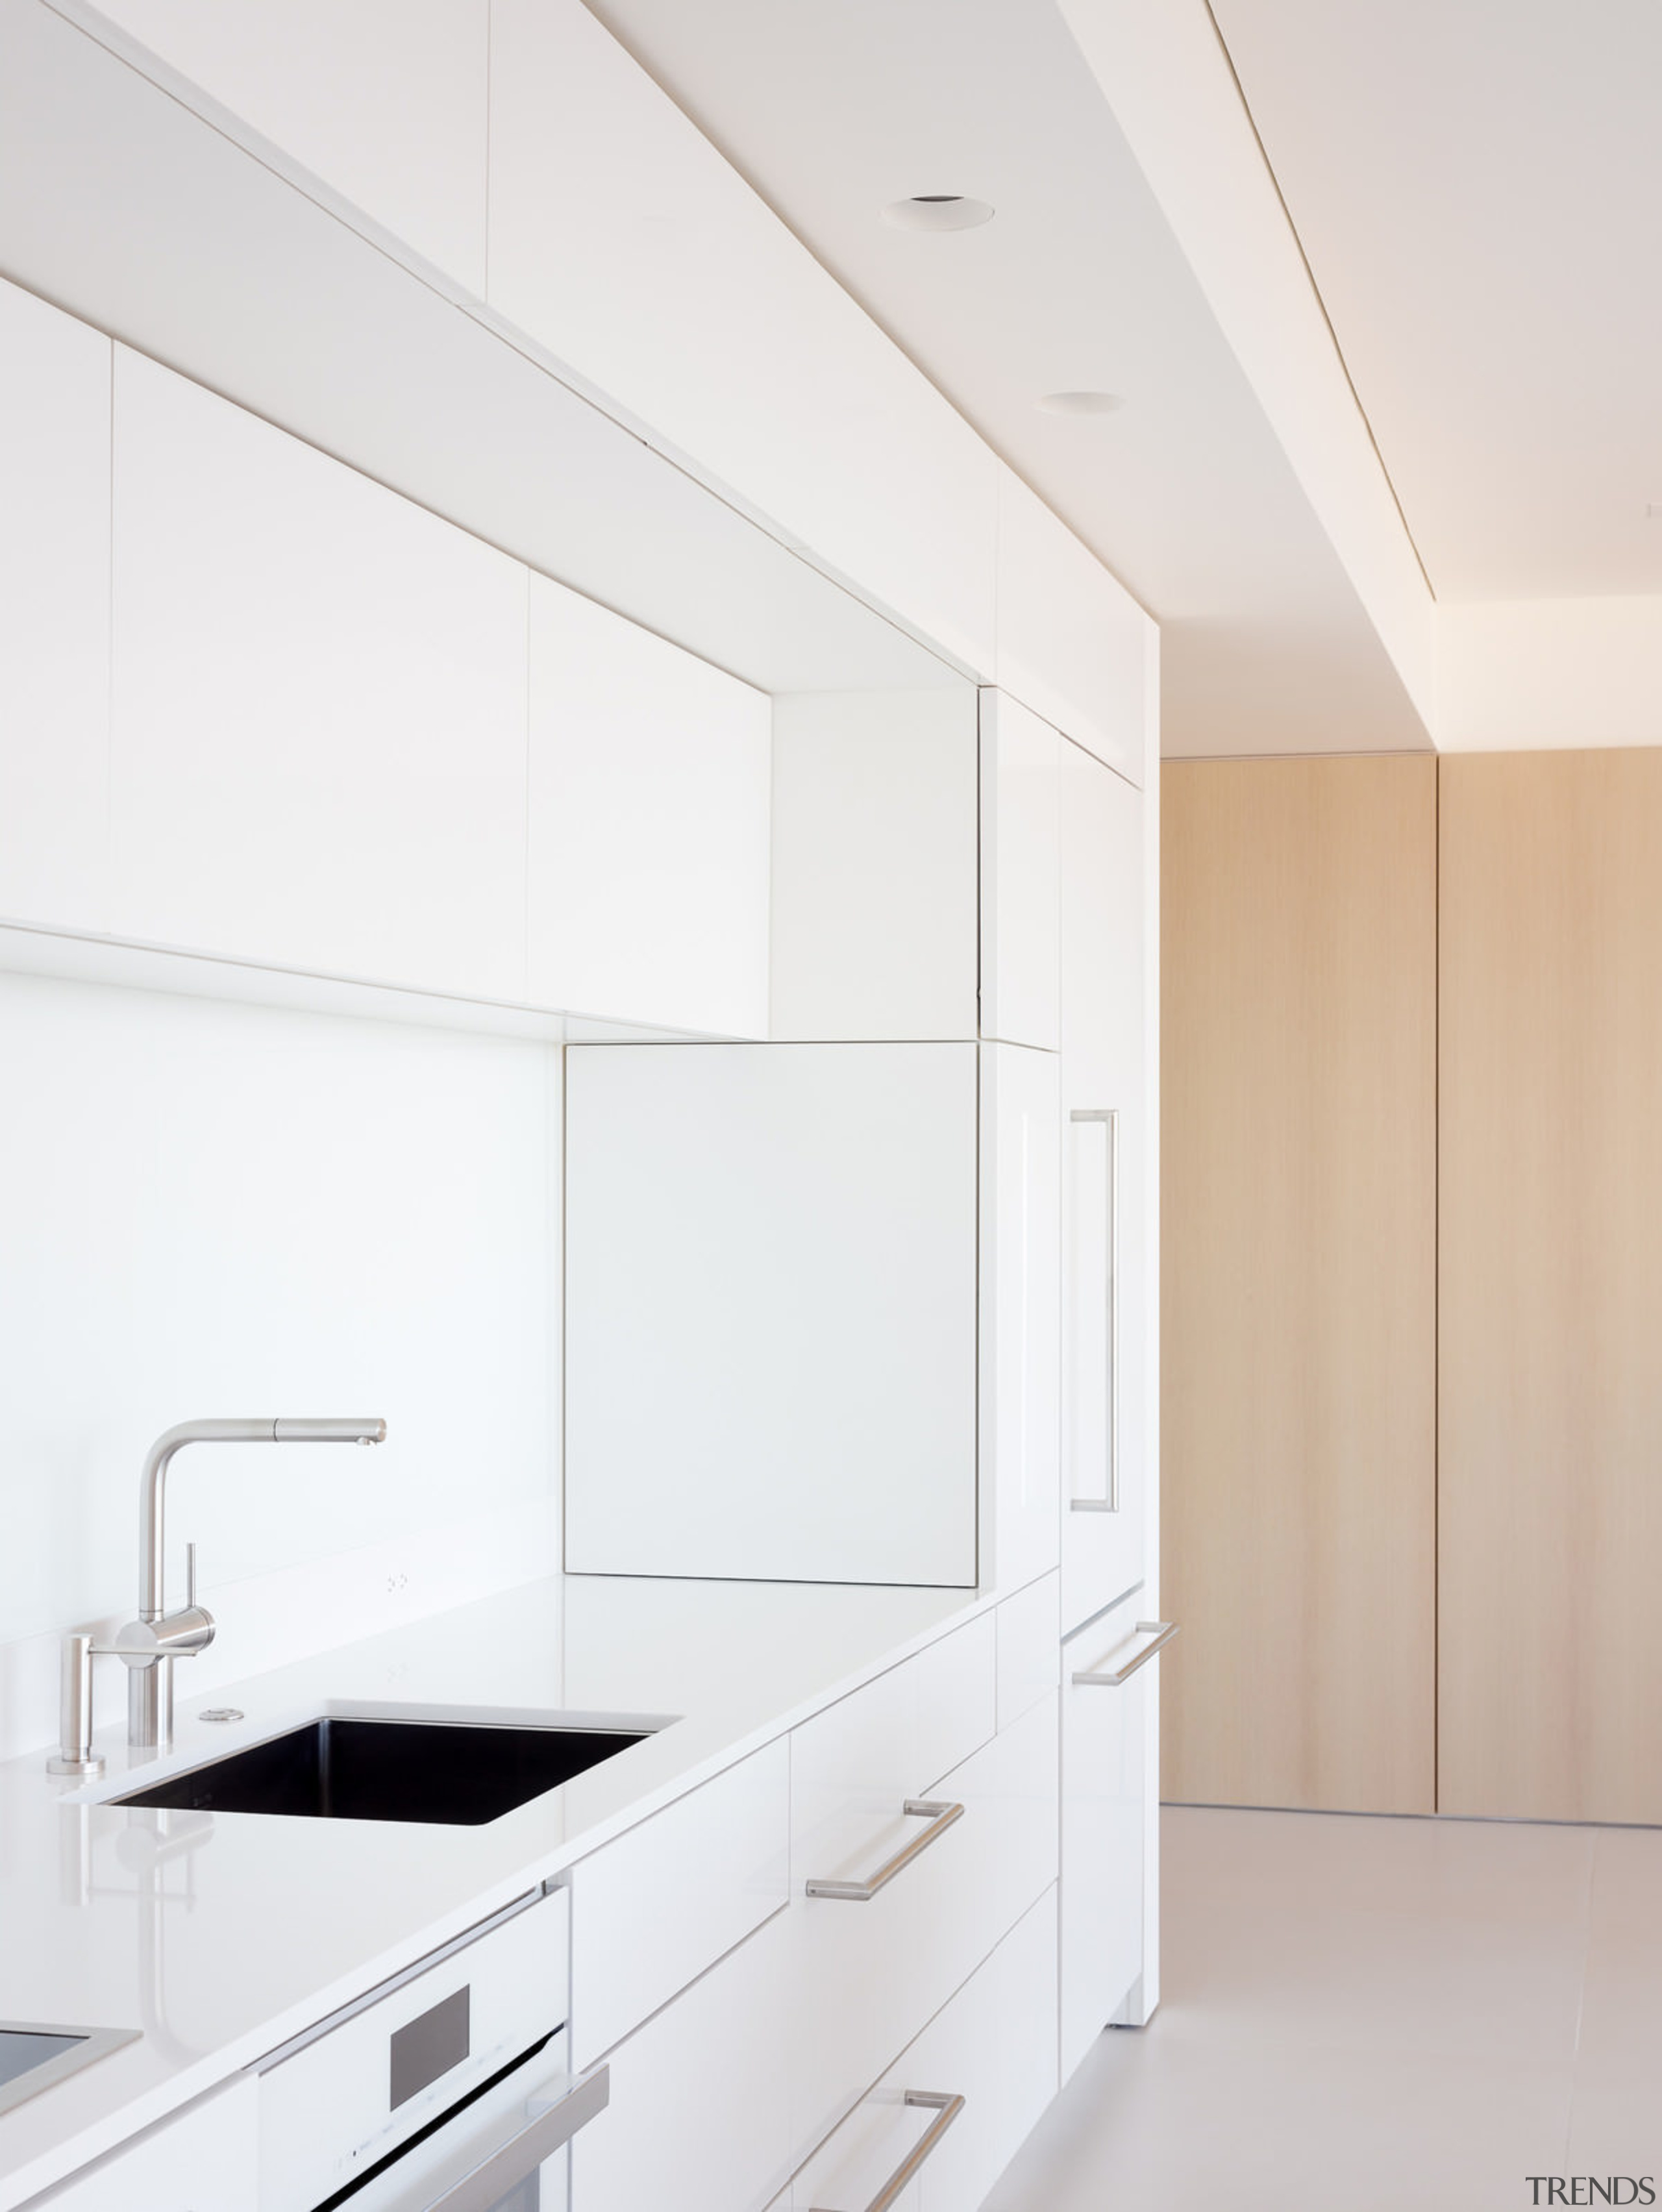 White cabinetry is an excellent choice in an architecture, countertop, interior design, kitchen, product design, white